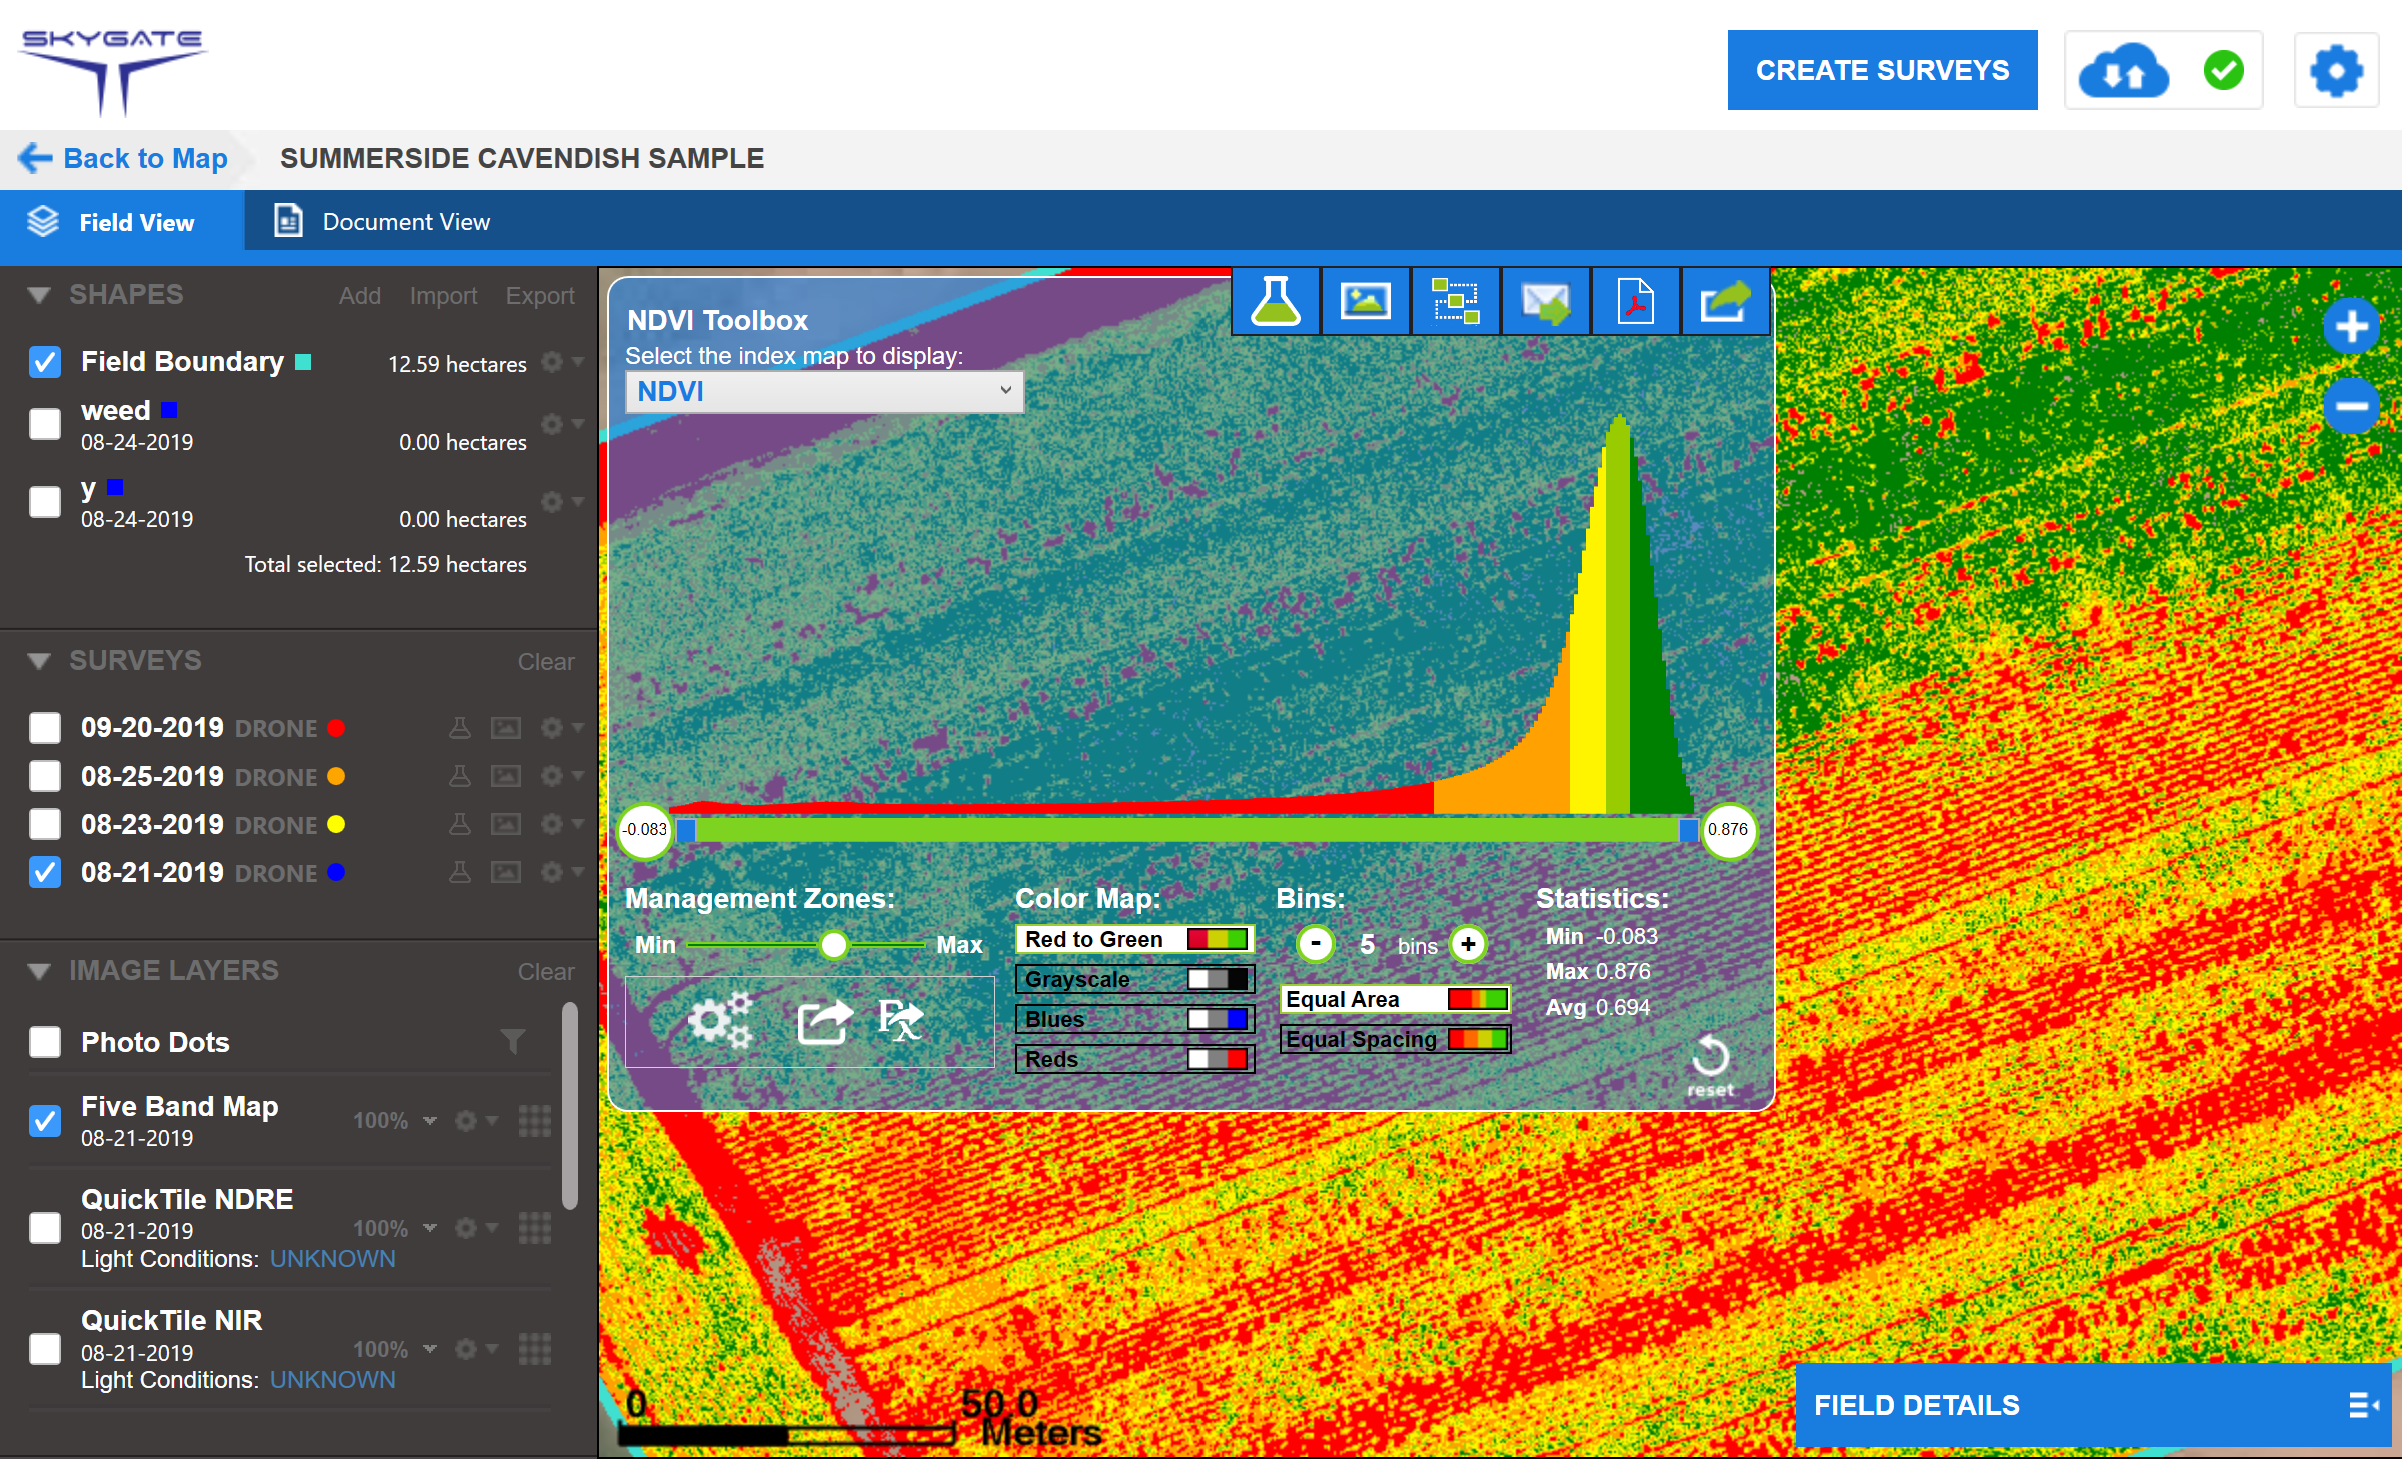 Skygate NDVI FieldAgent Viewer